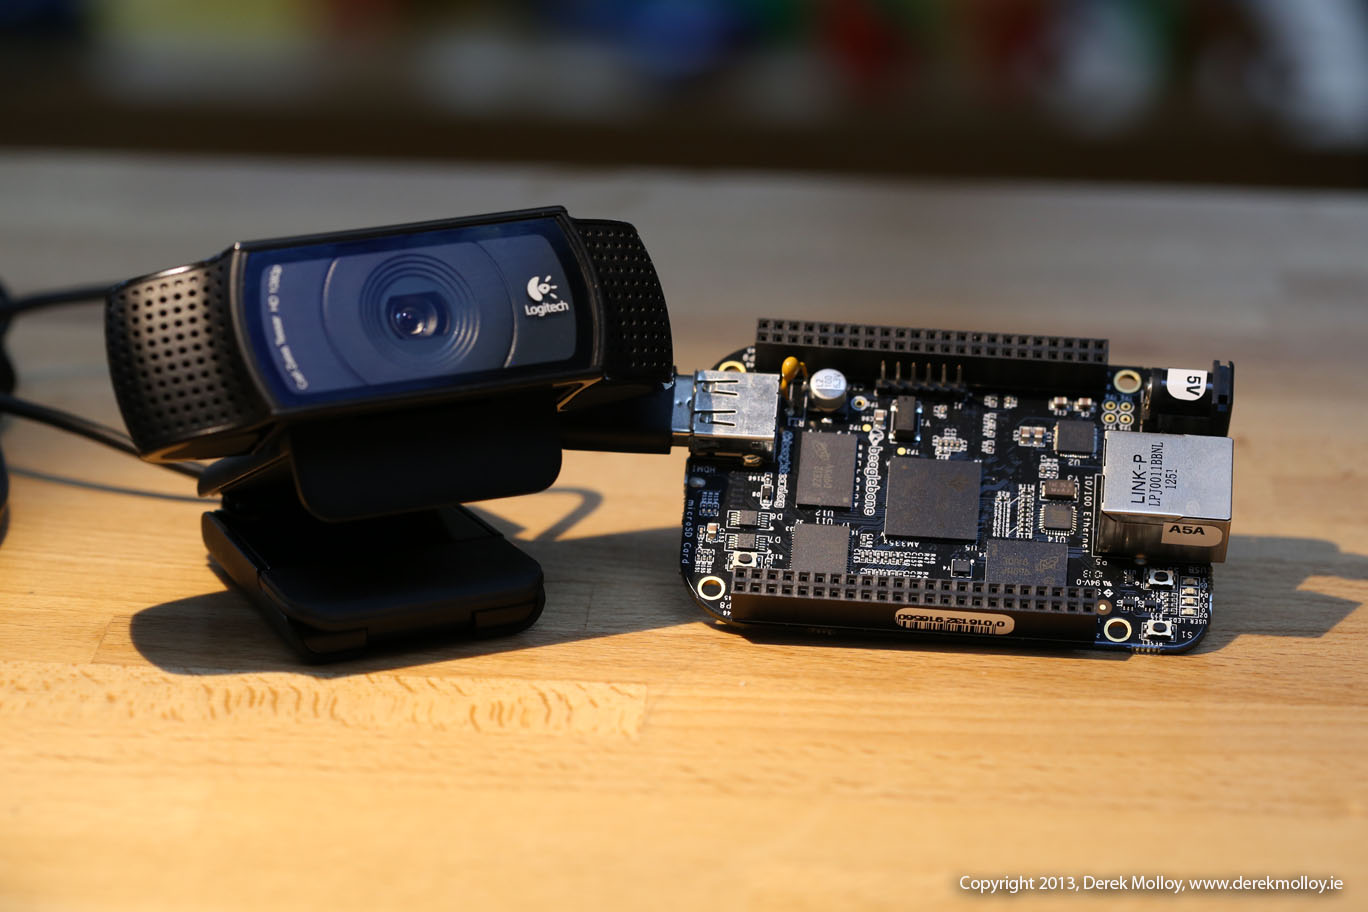 UDP Unicast and Multicast Streaming Video using the Beaglebone Black